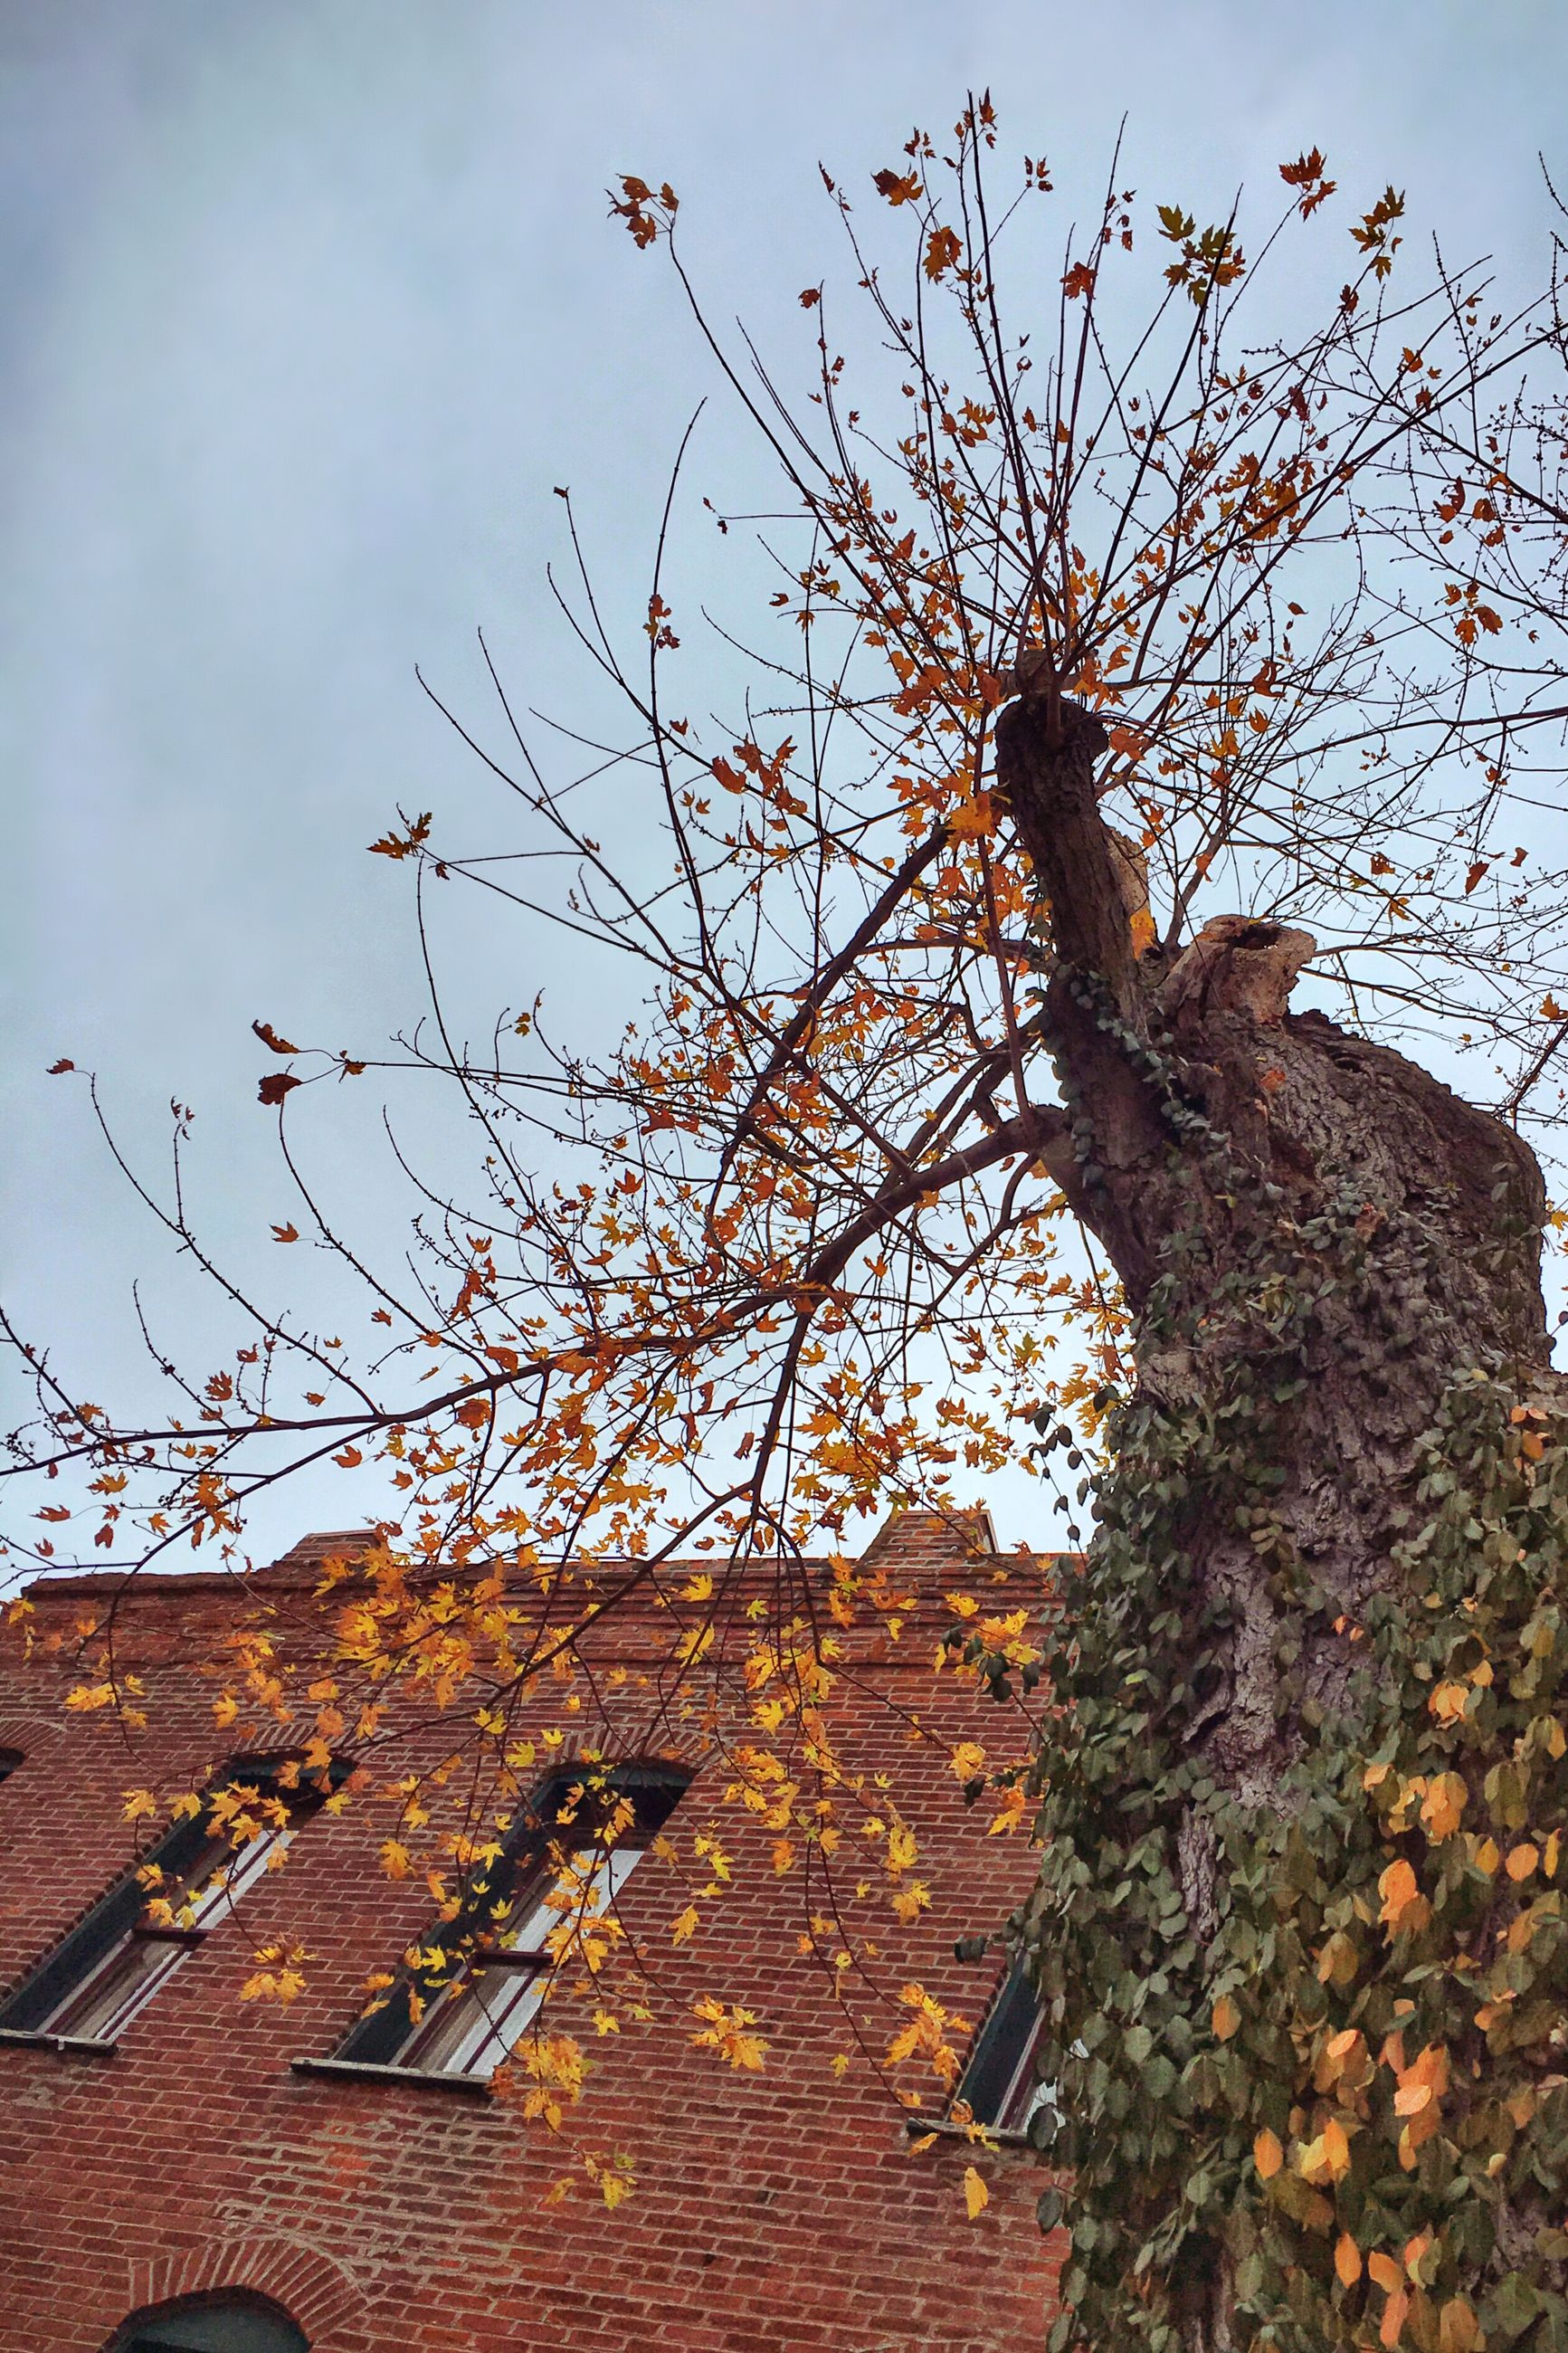 architecture, built structure, building exterior, low angle view, sky, house, brick wall, wall - building feature, tree, clear sky, abandoned, residential structure, old, stone wall, day, outdoors, branch, building, roof, no people